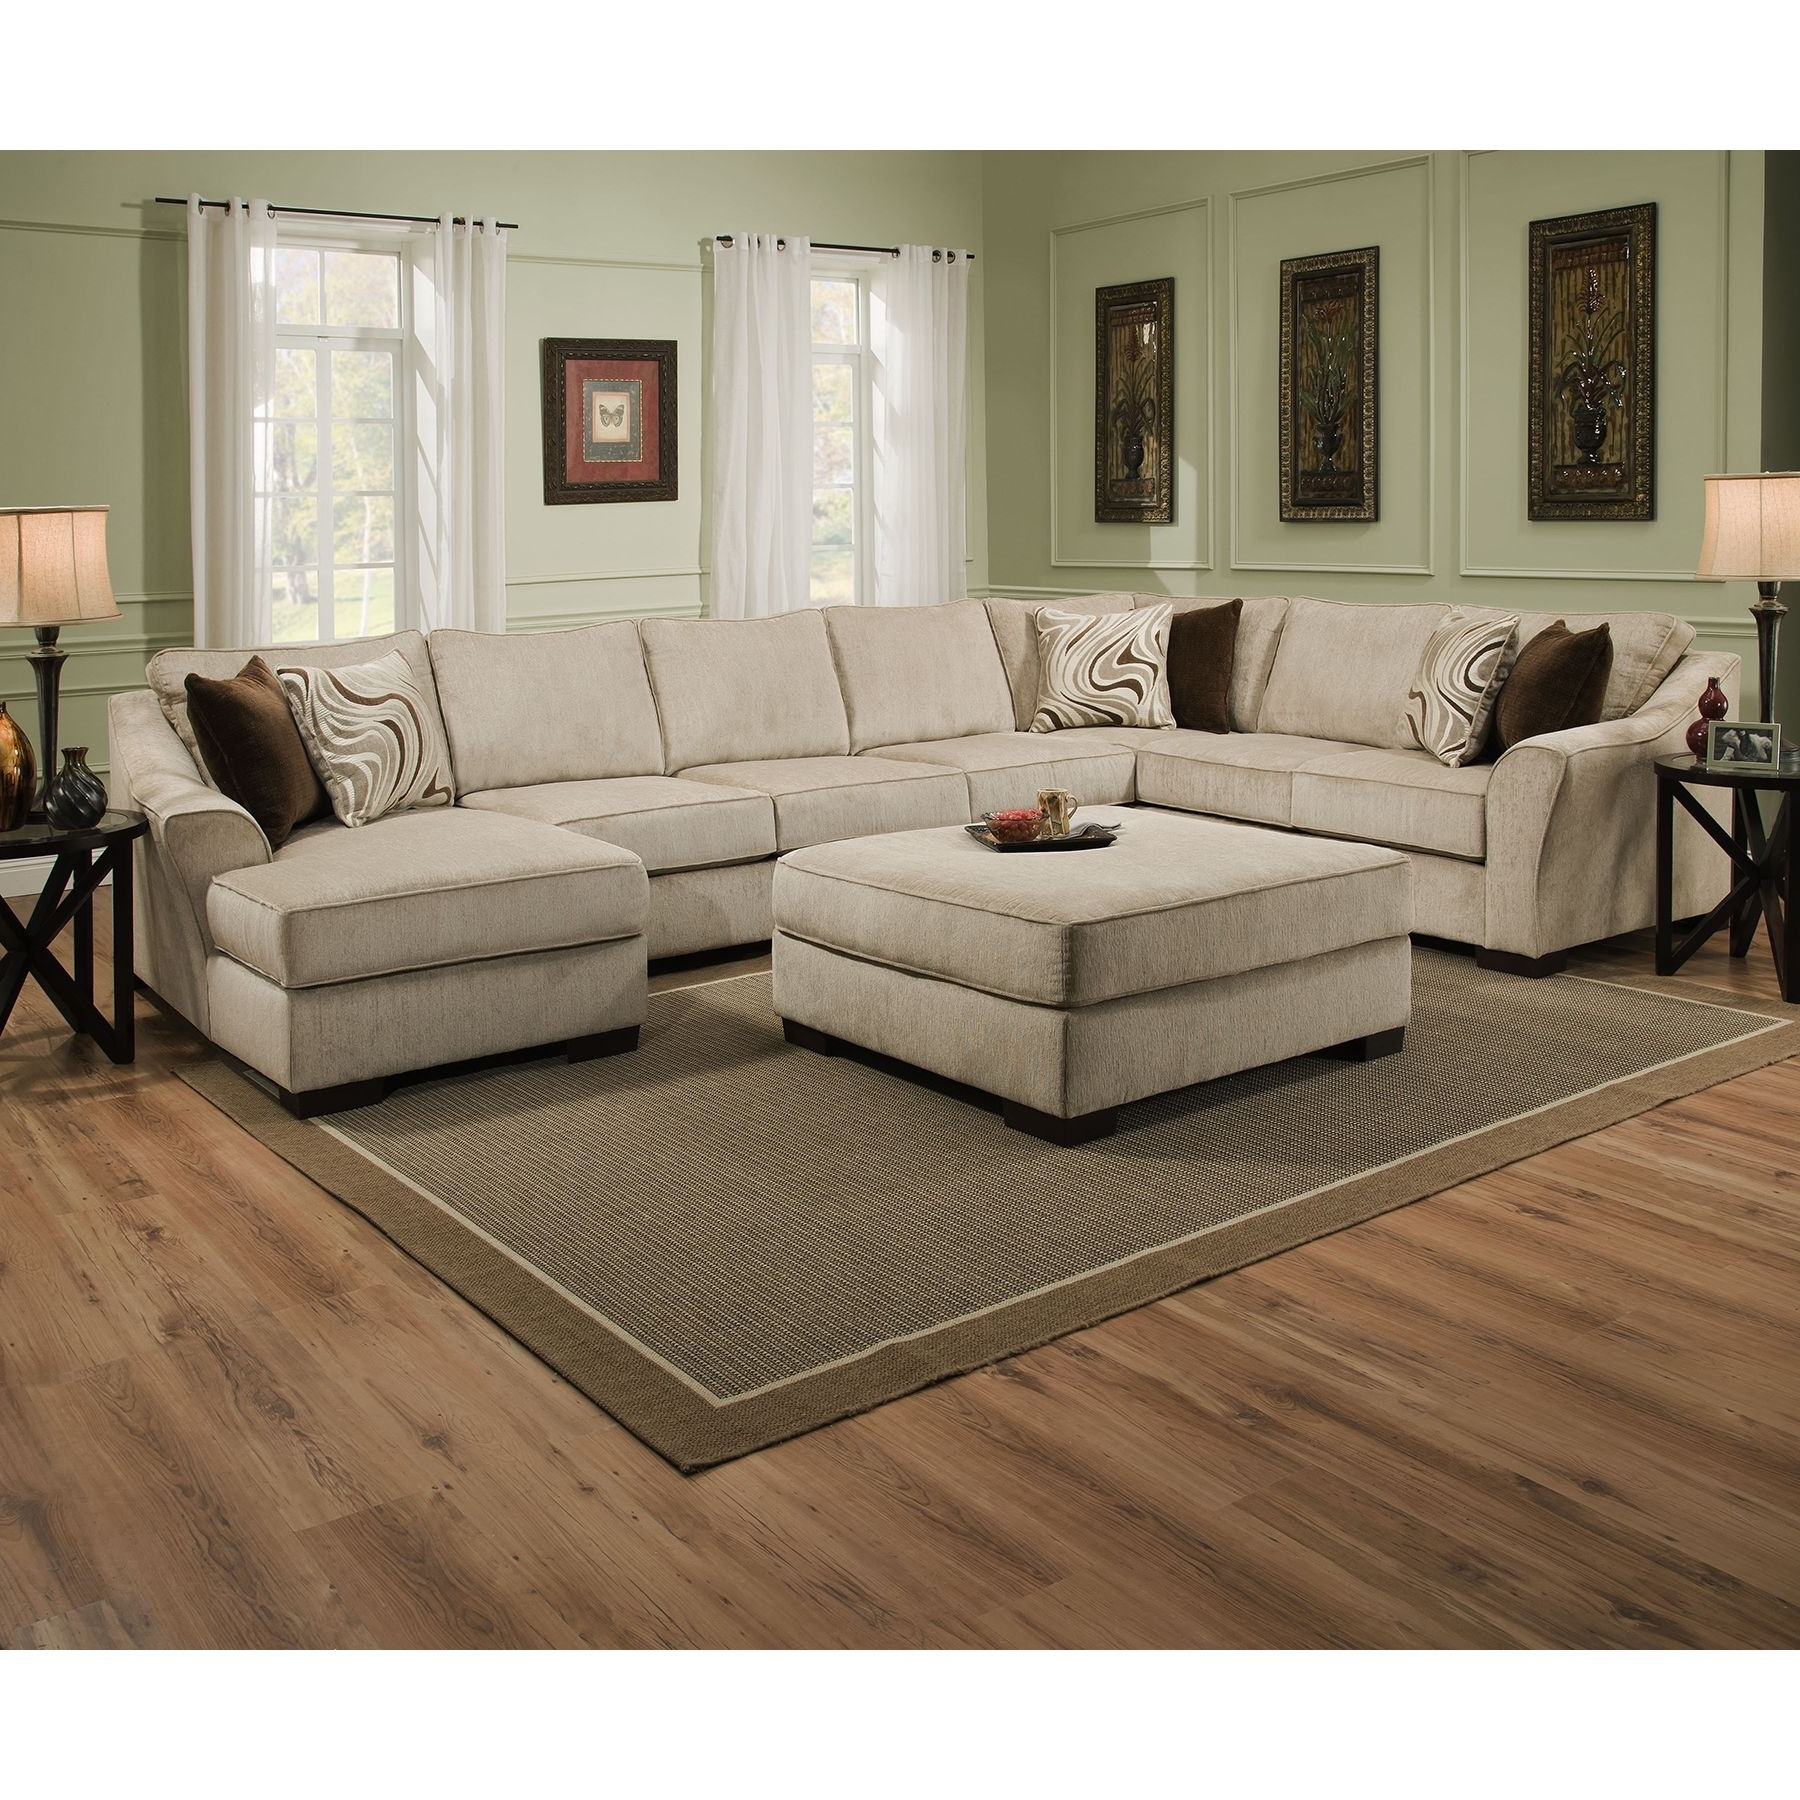 Furniture : Corner Sofa Kuwait Sectional Couch El Paso Sectional With Well Liked Halifax Sectional Sofas (View 13 of 20)